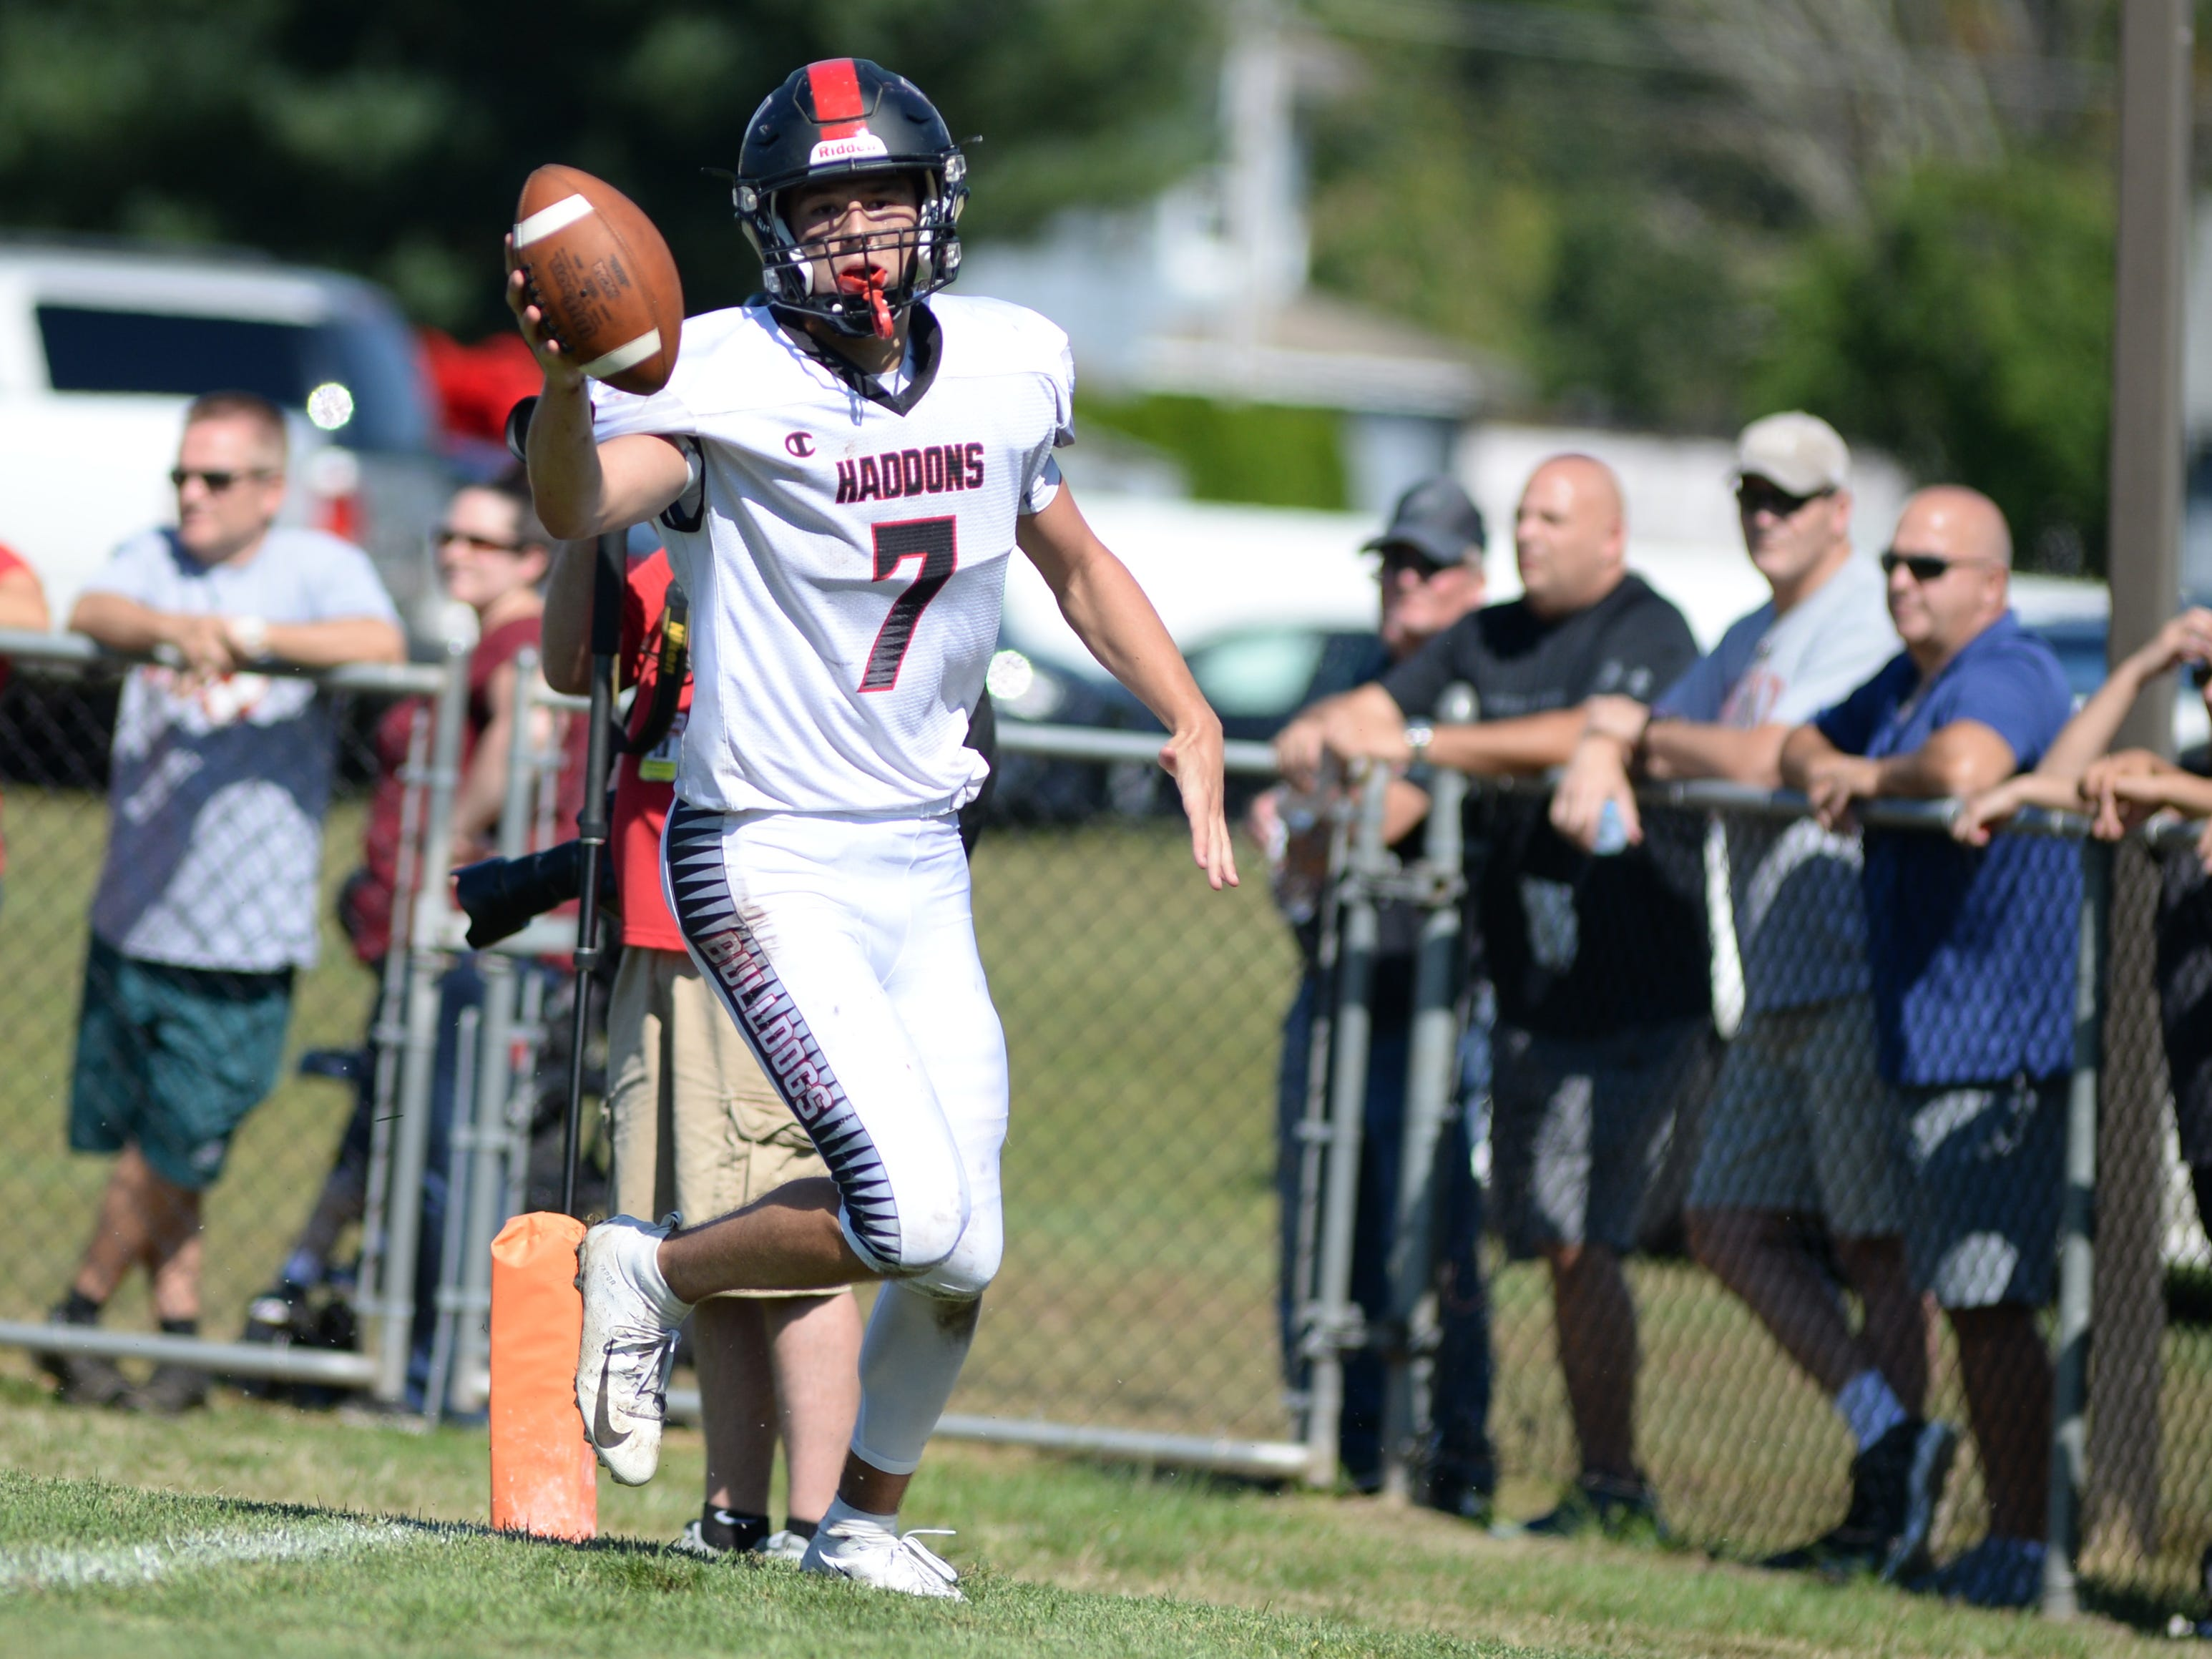 Haddonfield's Drew Gavranich celebrates as he runs the ball for a touchdown during Saturday's game against St. Joseph, Sept. 29, 2018.